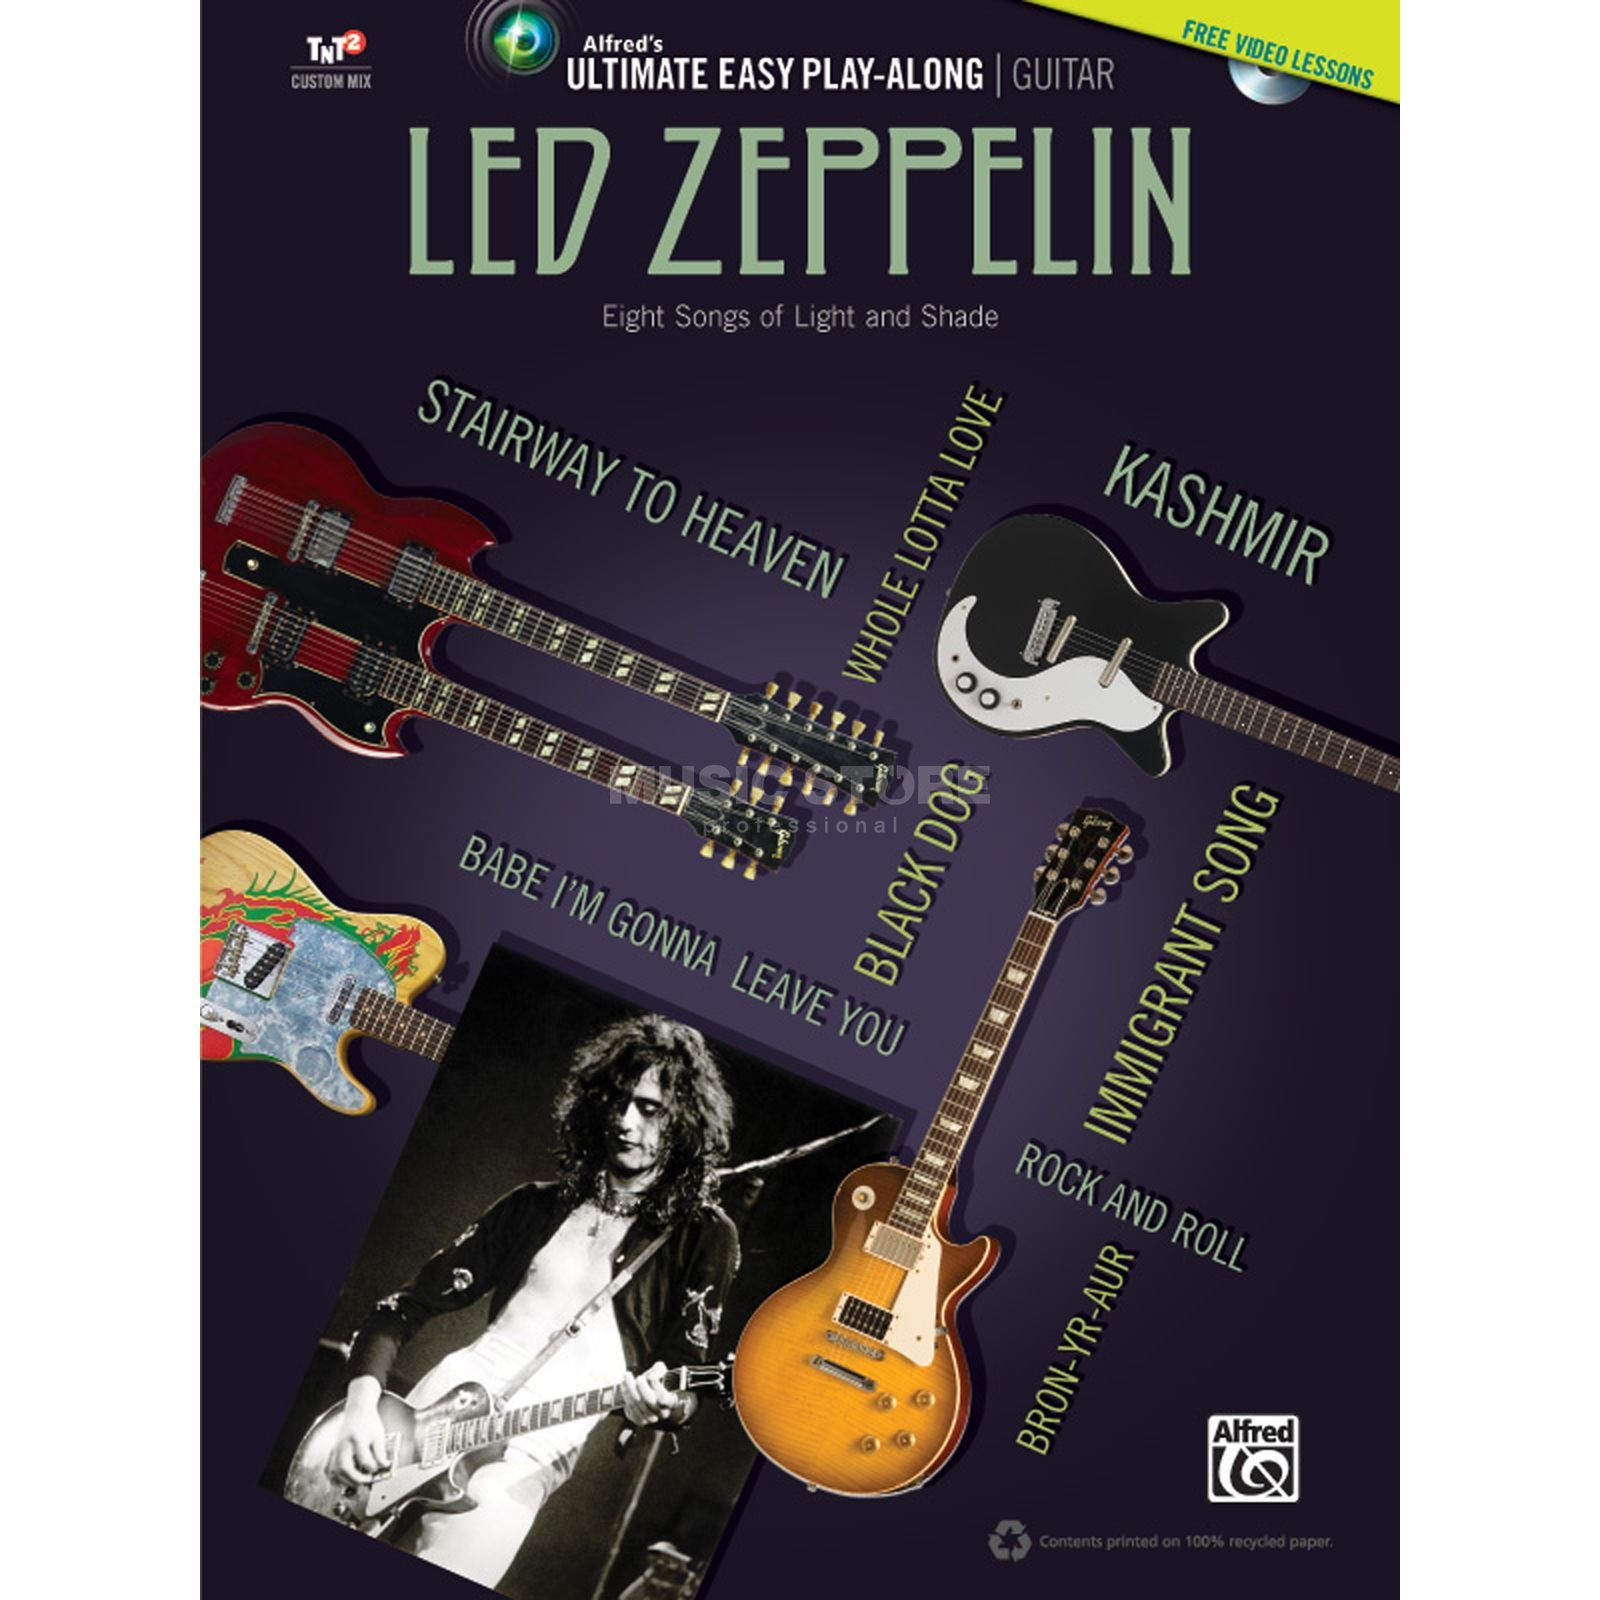 Alfred Music Ultimate Easy Guitar Play-Along: Led Zeppelin Produktbild